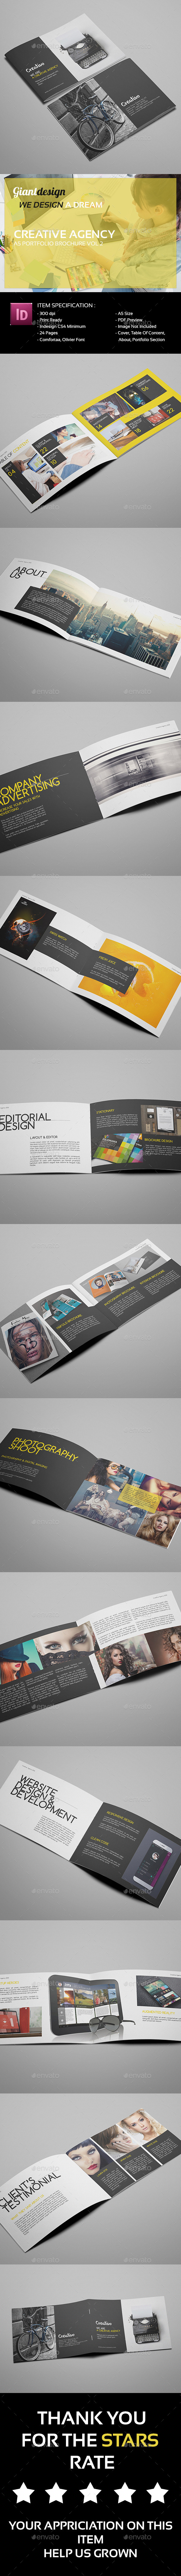 GraphicRiver Creative Agency A5 Portfolio Brochure Vol2 10326688